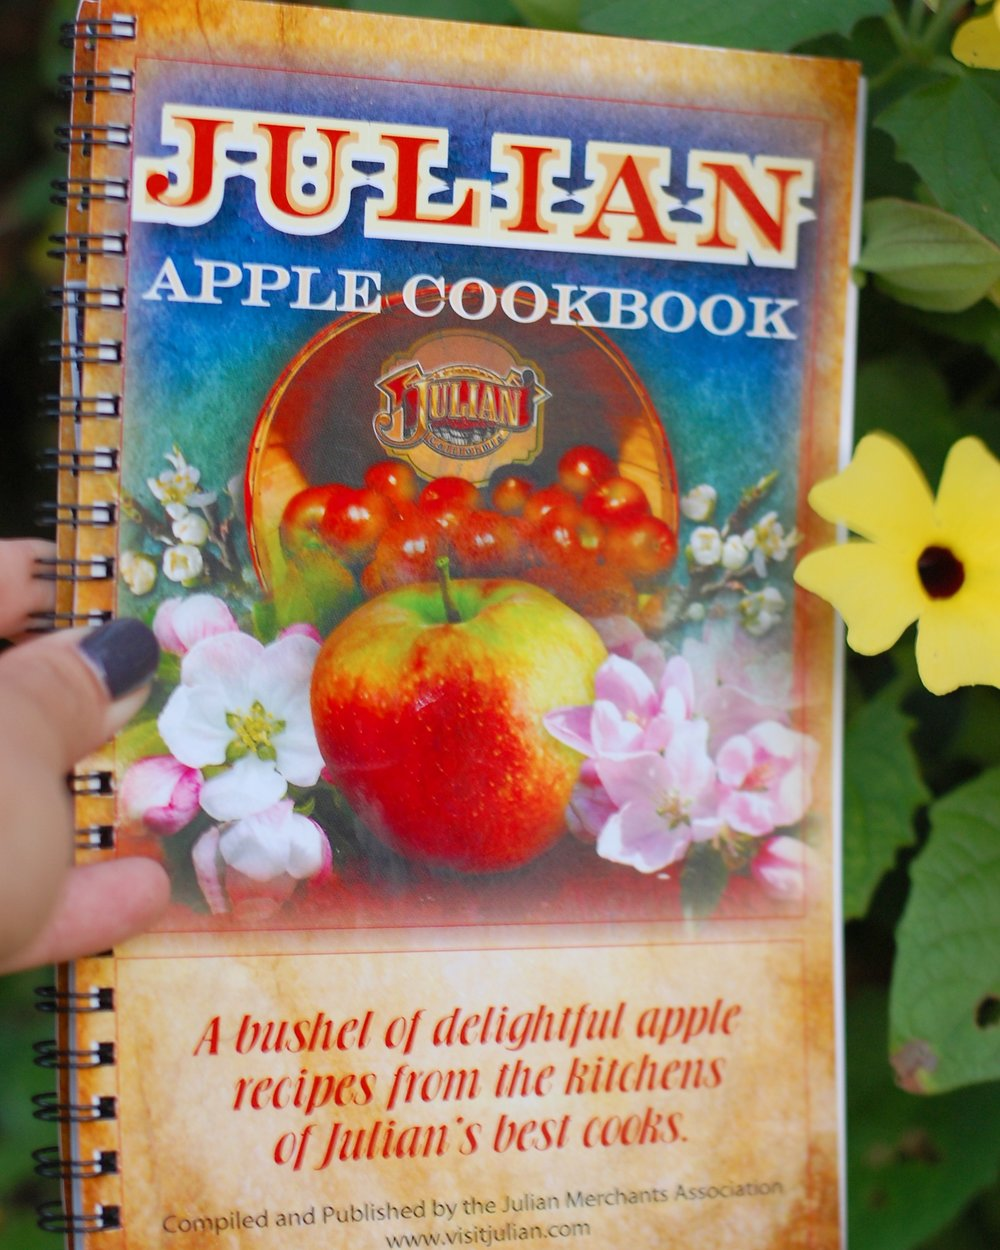 - If you are wondering what to do with all your apples, stop by the Chamber of Commerce, or most of the big shops in town to get an apple cookbook! Let the apple-loving locals give you their favorites, as their recipes are showcased in this cookbook!